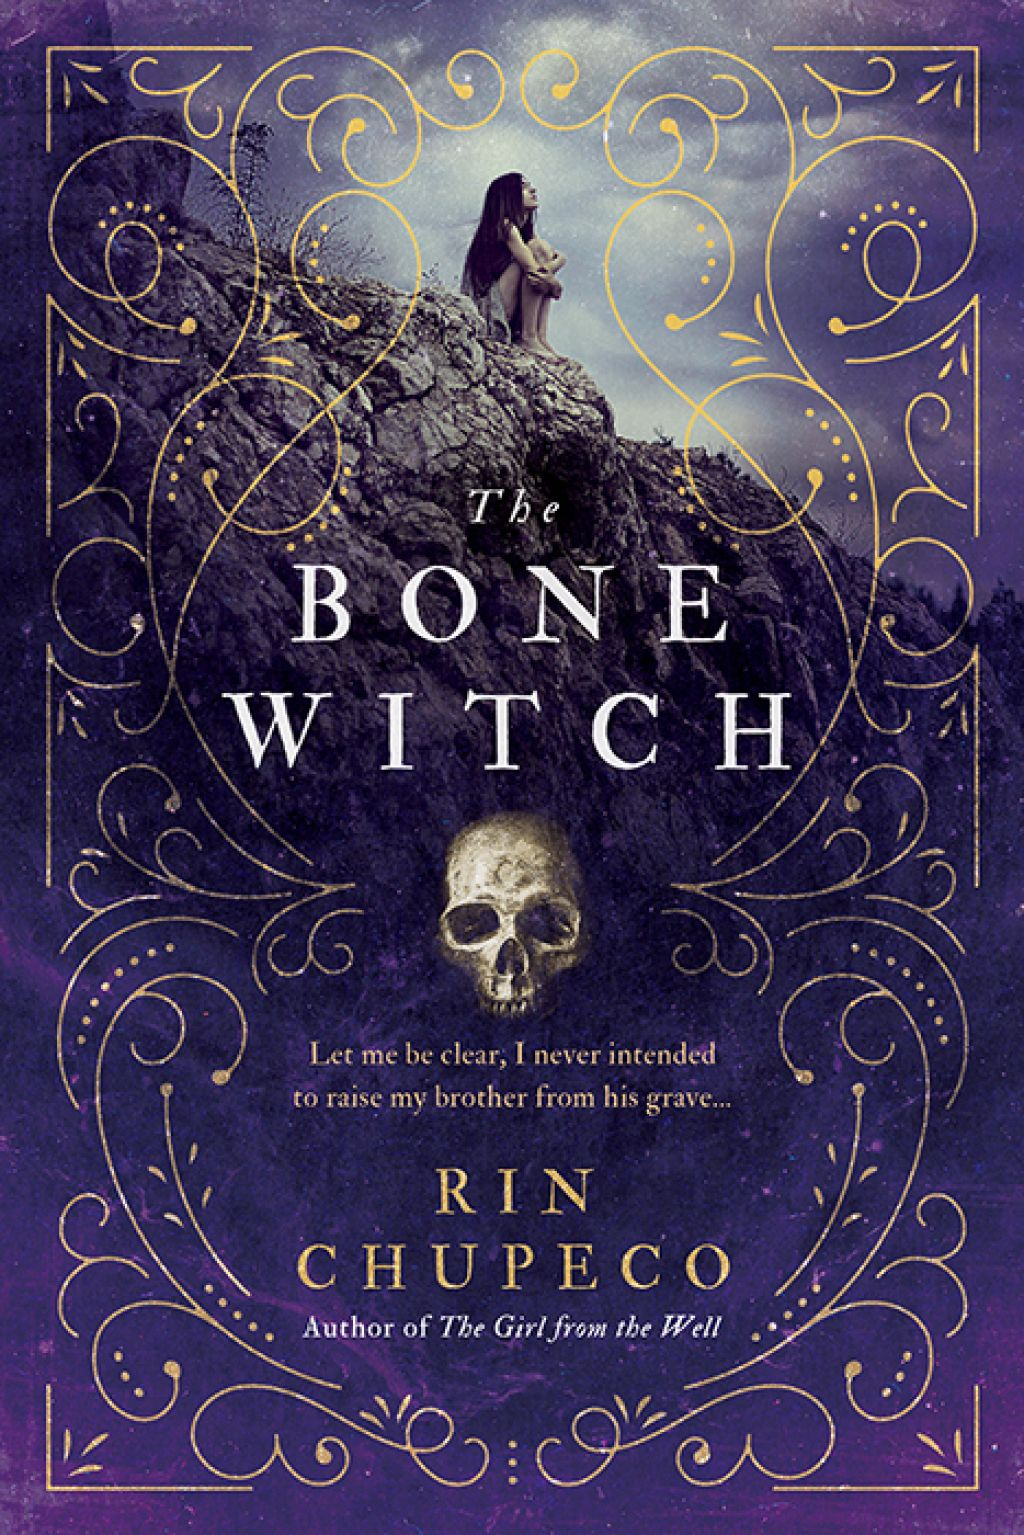 The Bone Witch (eBook) is part of Witch books - By Rin Chupeco PRINT ISBN 9781492635826 ETEXT ISBN 9781492635833 Edition 0